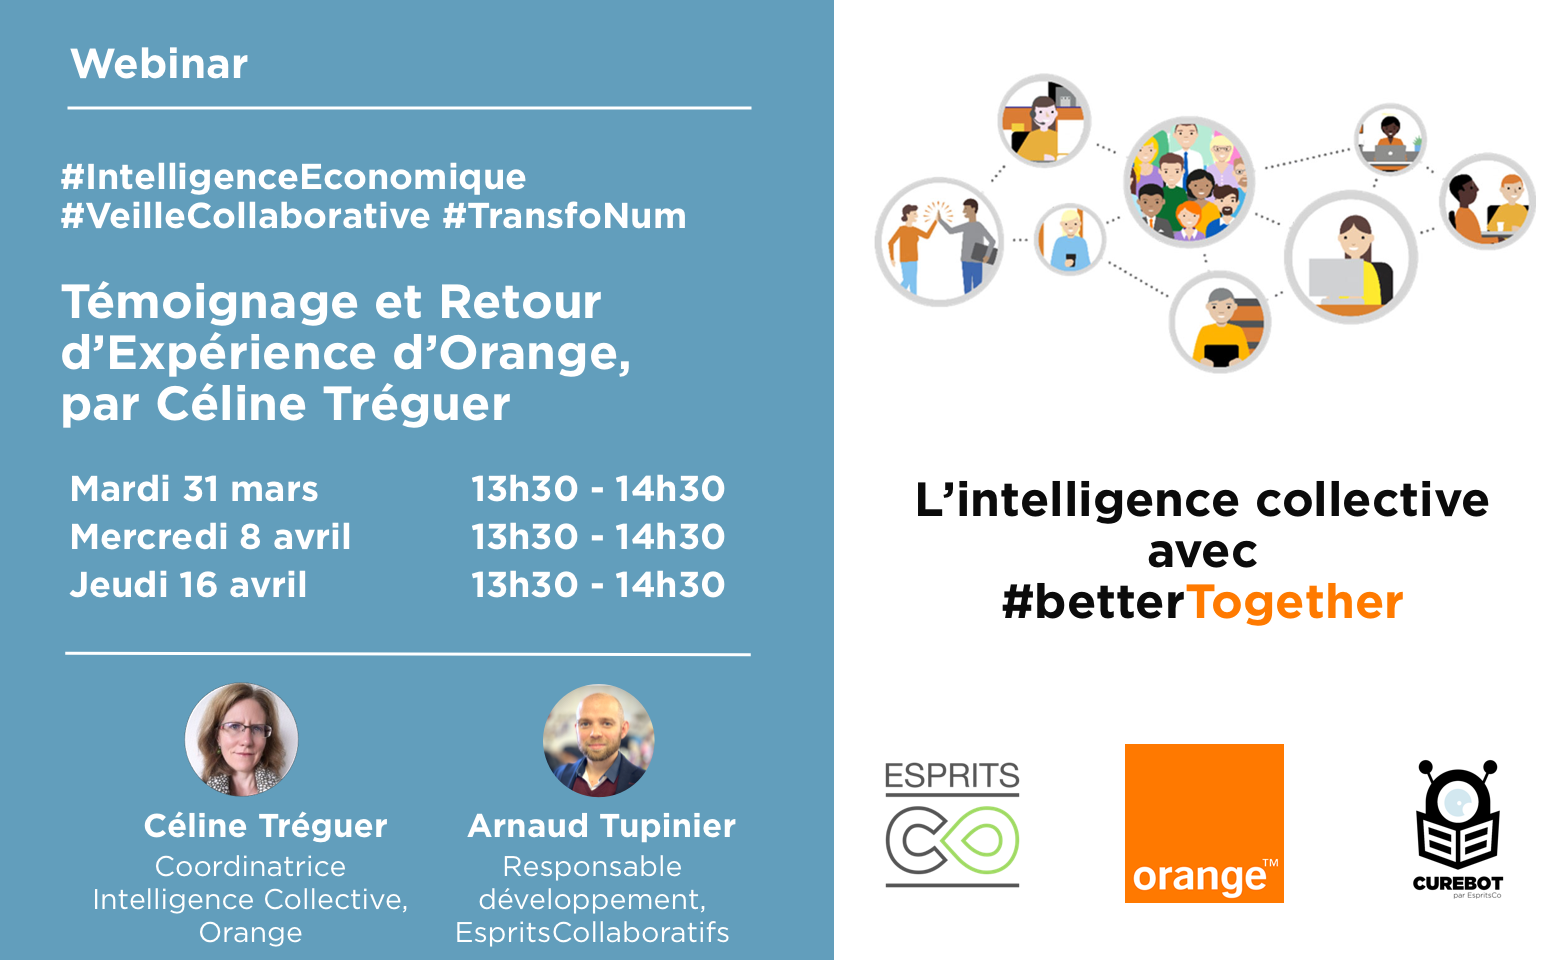 webinar-orange-curebot